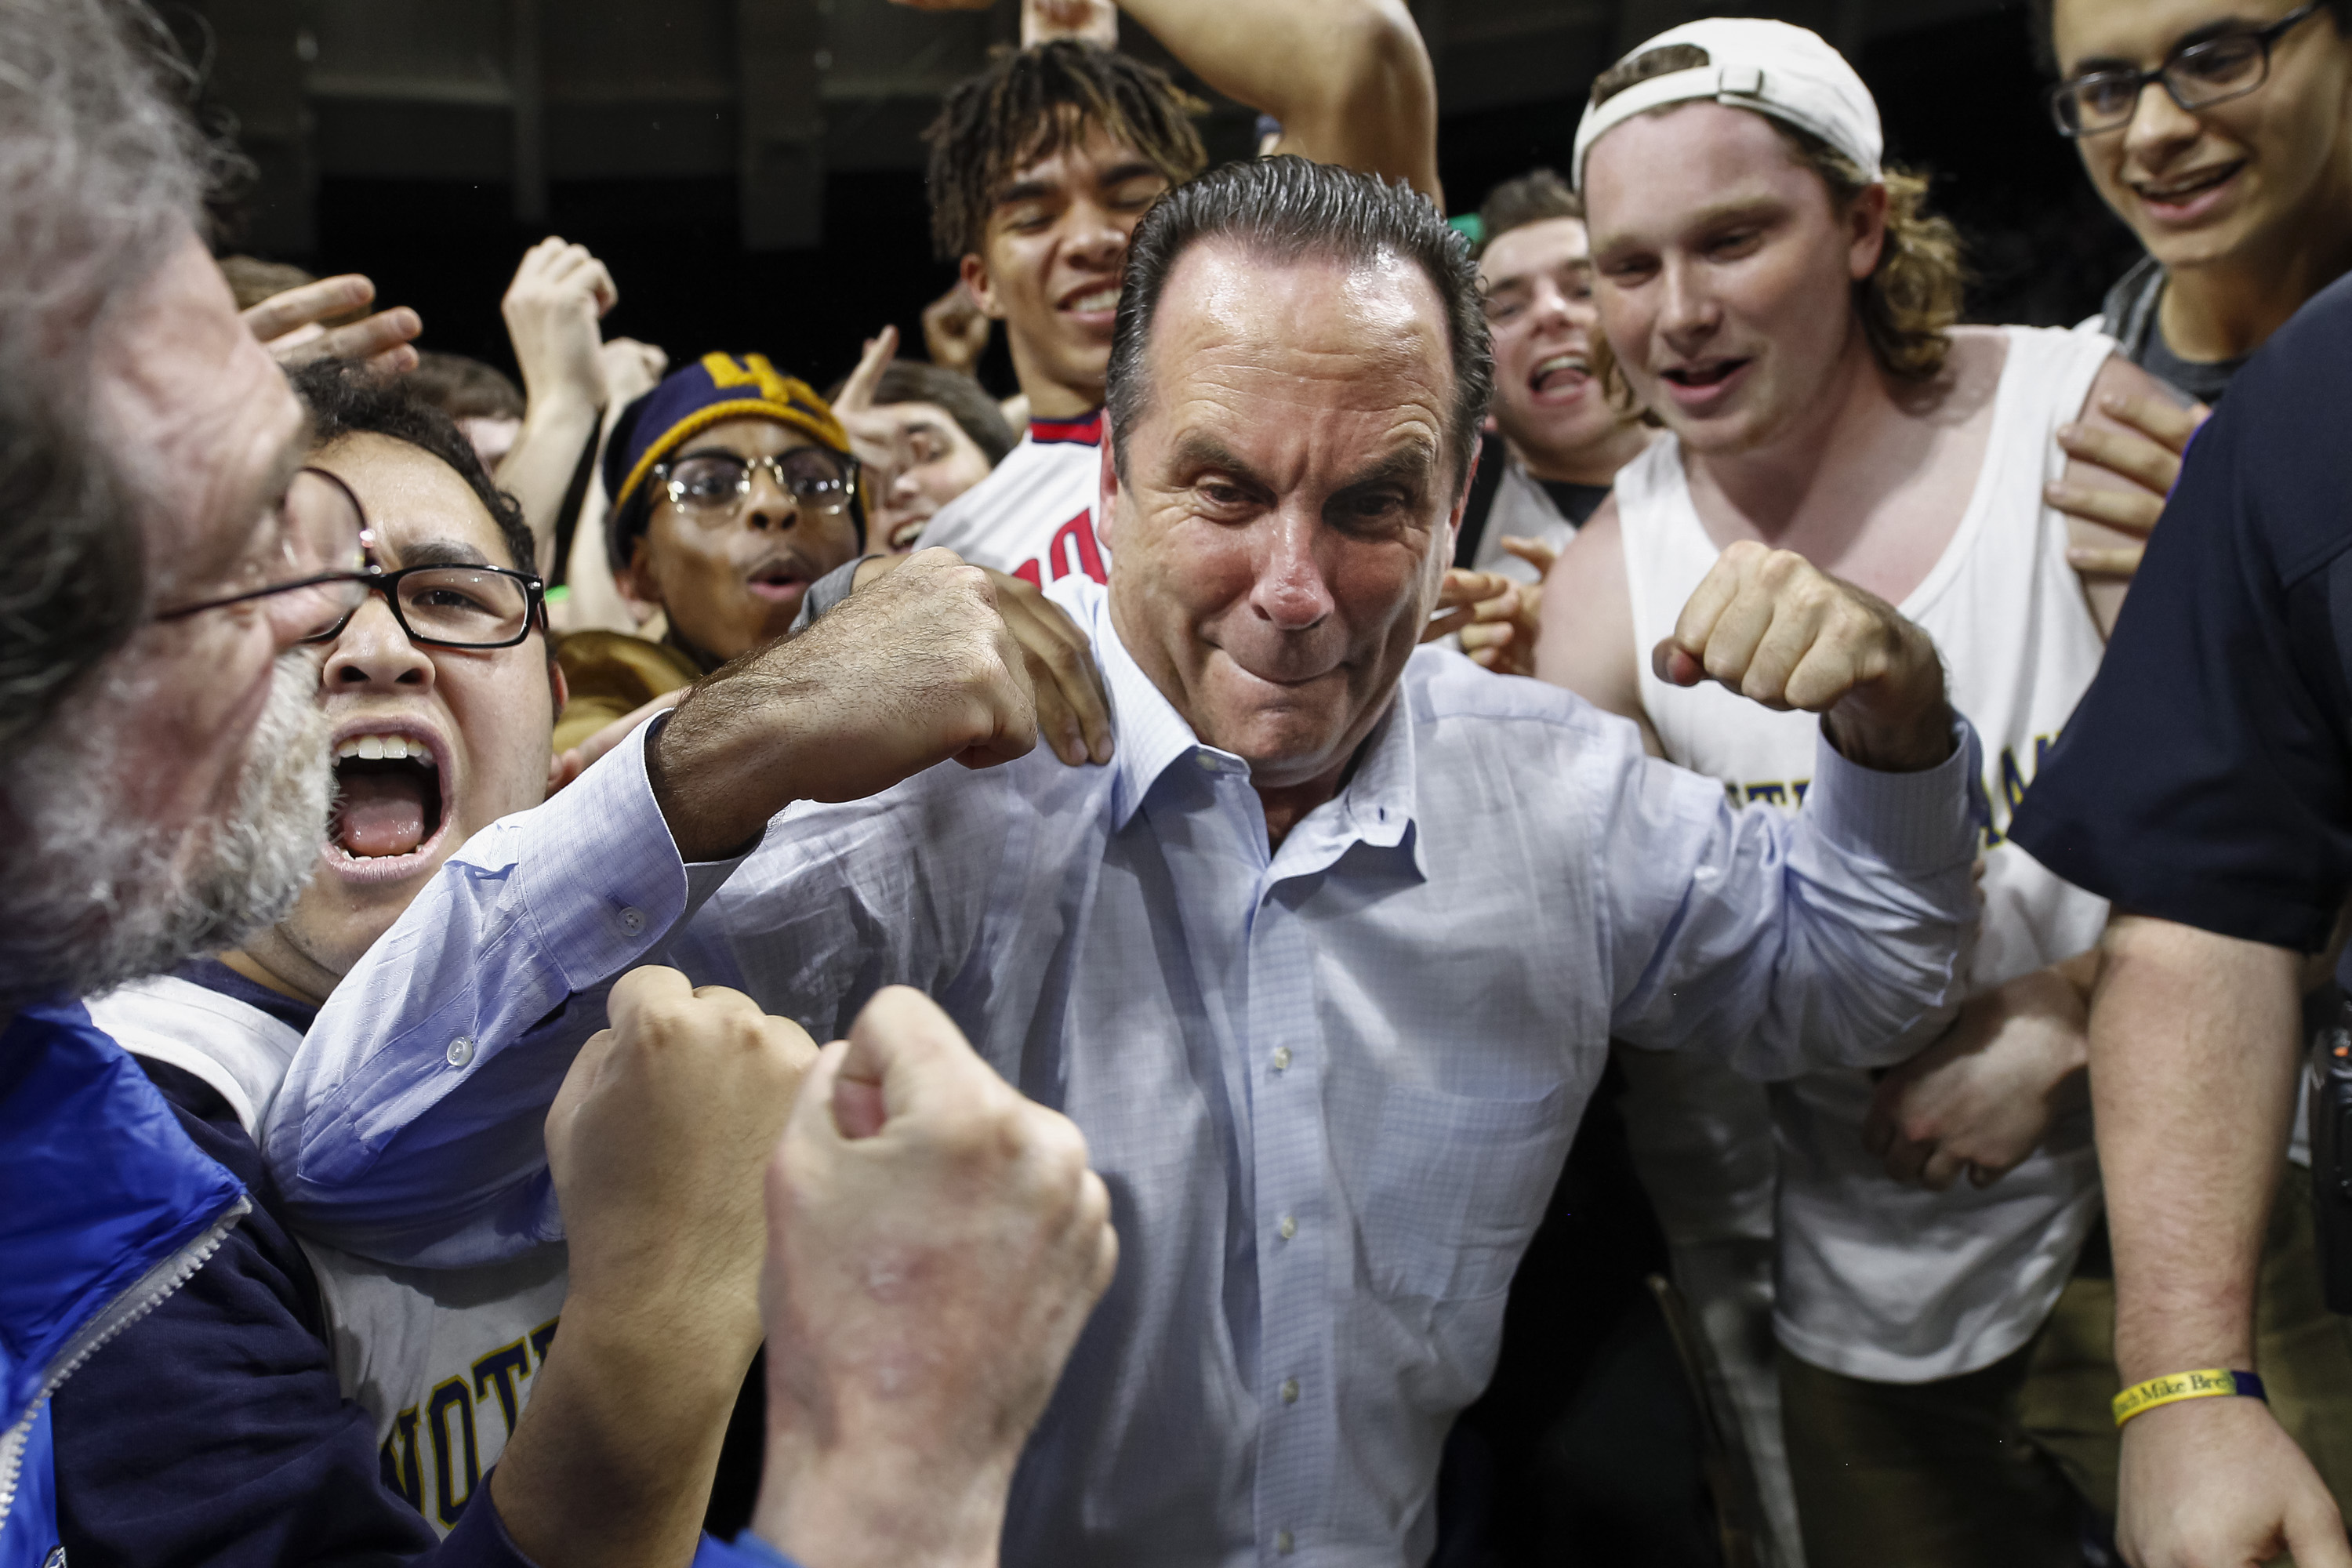 Notre Dame head coach Mike Brey (who has a family sports connection to Buffalo) celebrates with students after beating Florida State this season. (Getty Images)